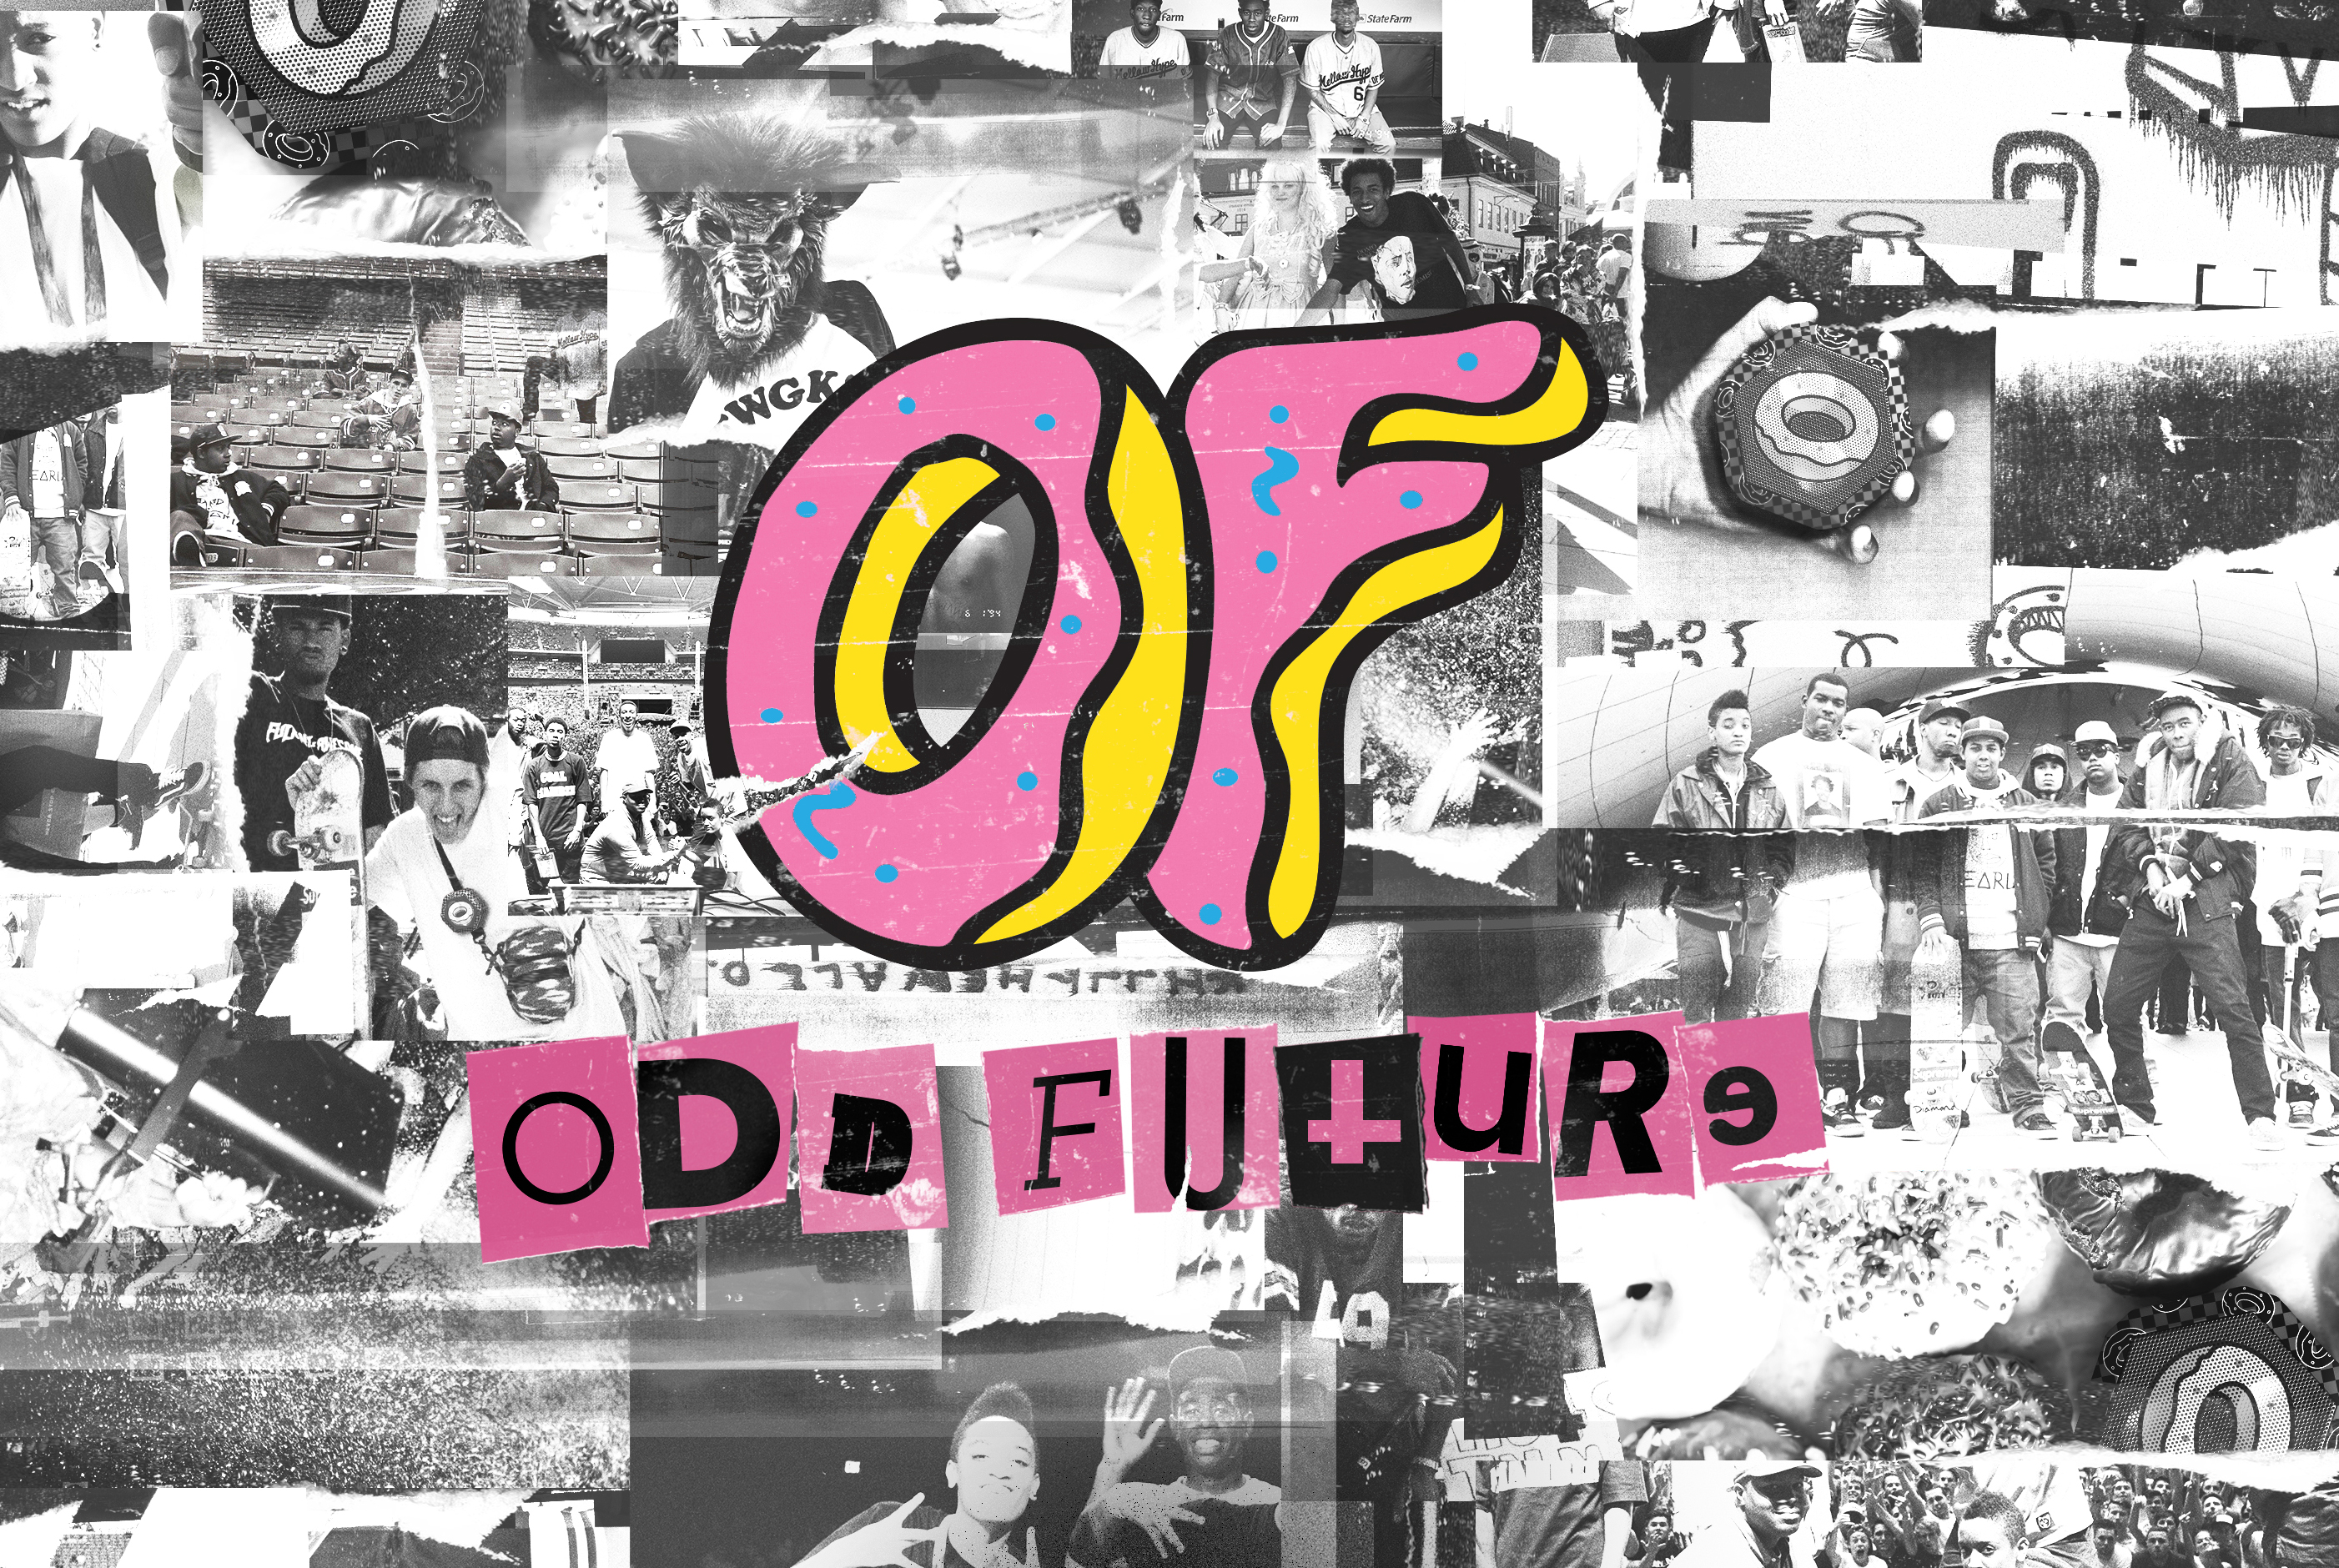 """Collage of black and white images of boombotix speakers and music group members with """"Odd Future"""" donut logo imposed over all of the images"""